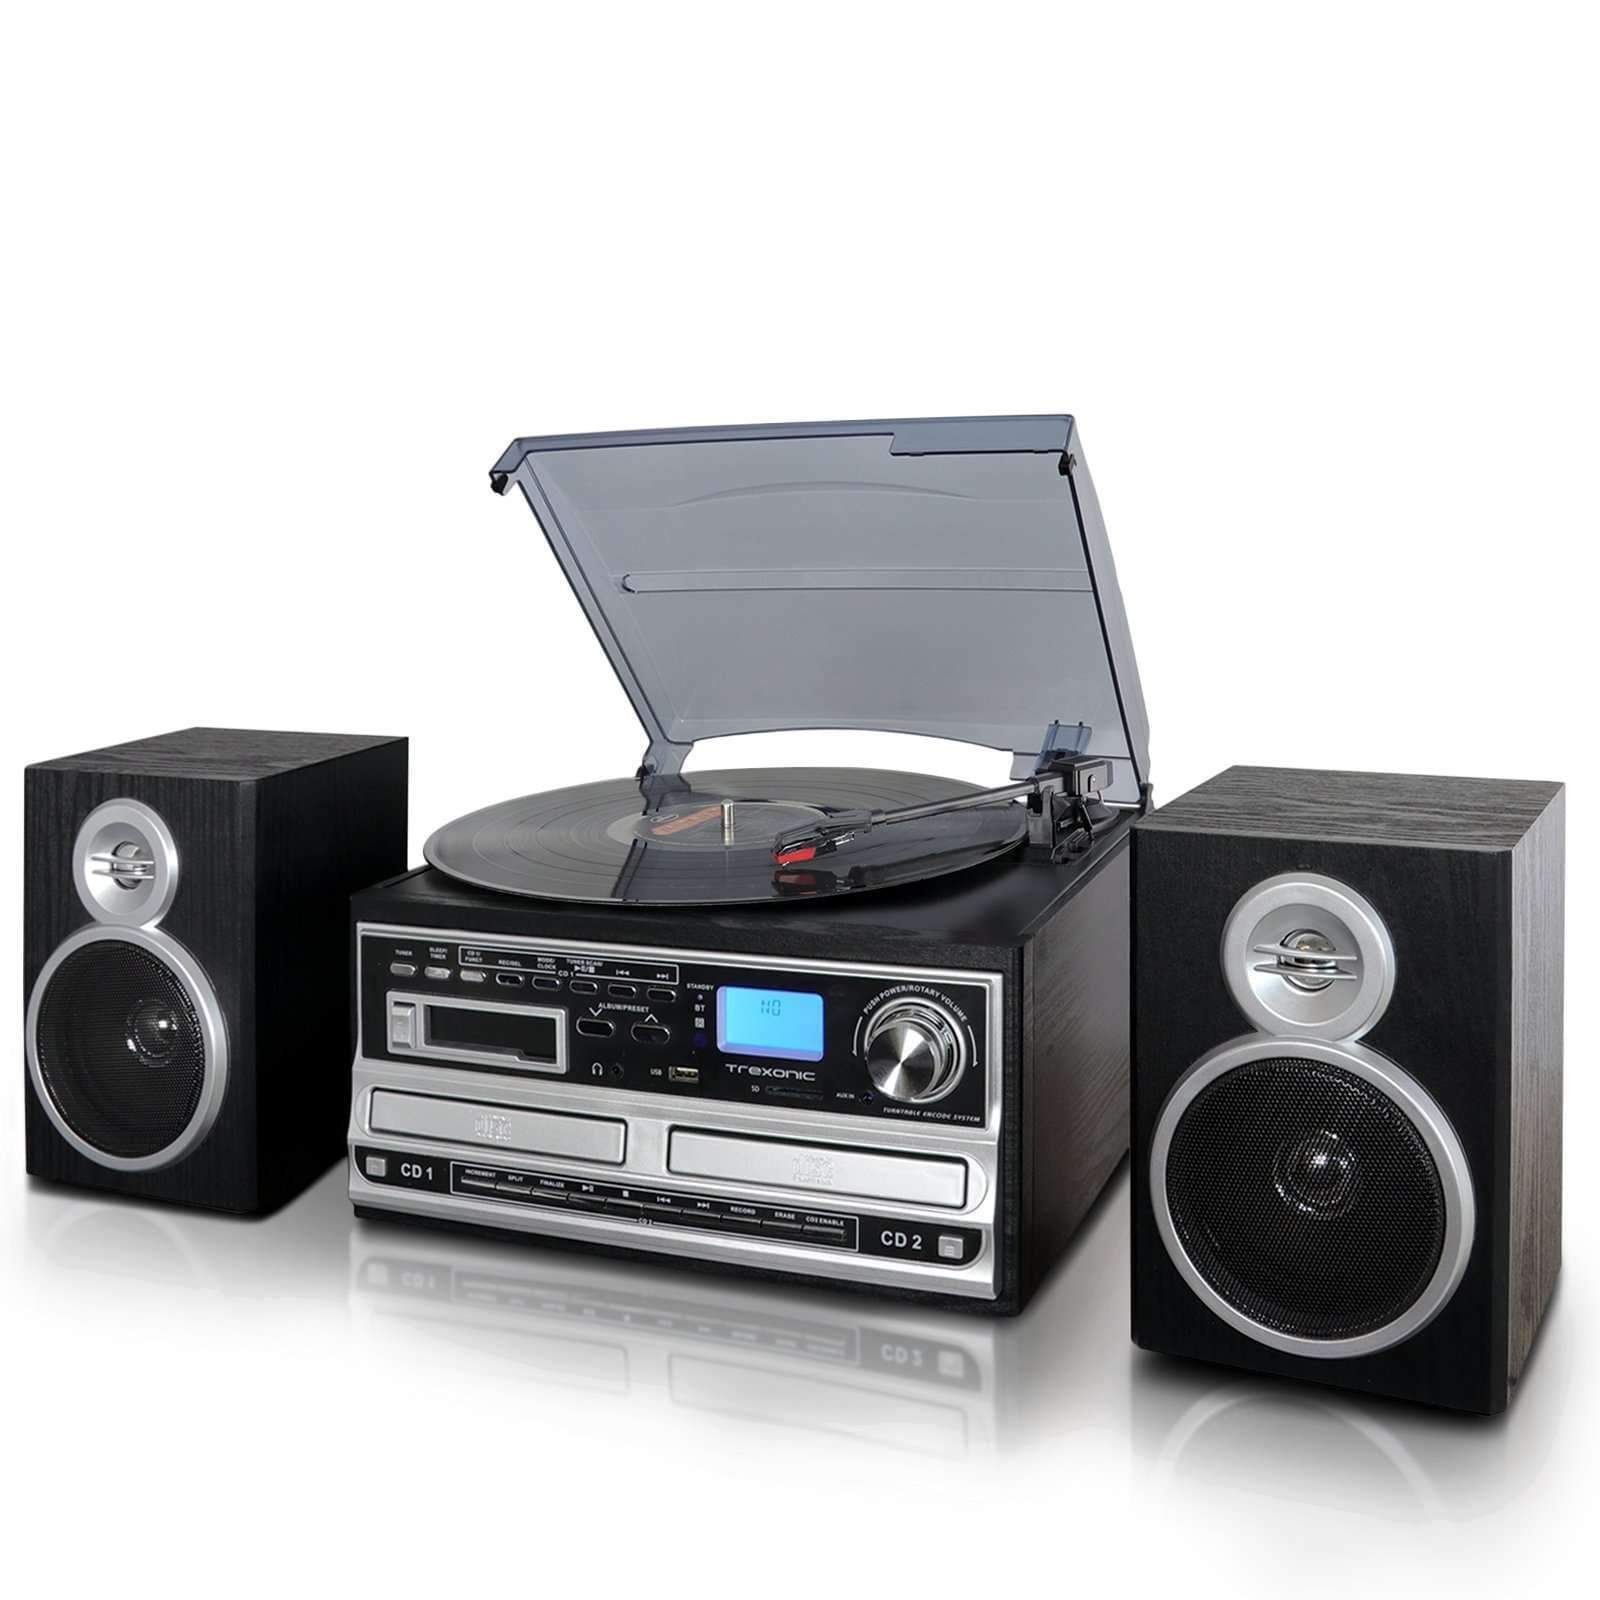 Trexonic Nostalgia Systems Trexonic 3-Speed Turntable With CD Player, CD Recorder, Cassette Player, Wired Shelf Speakers, FM Radio & CD-USB-SD Recording